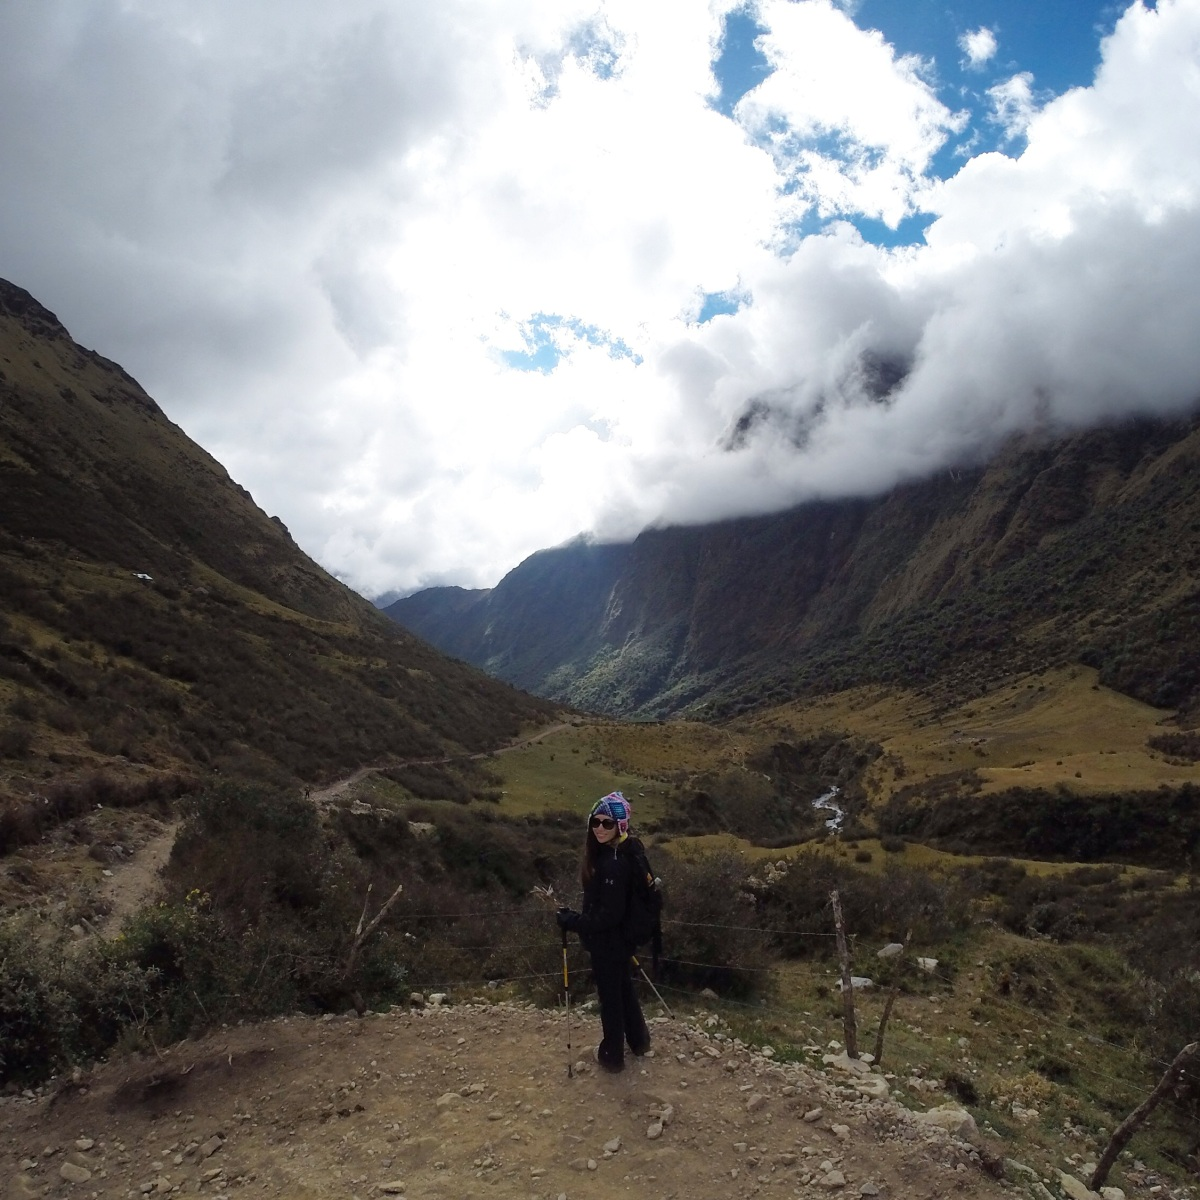 Trekking to Machu Picchu: Which Trail Should I Hike?